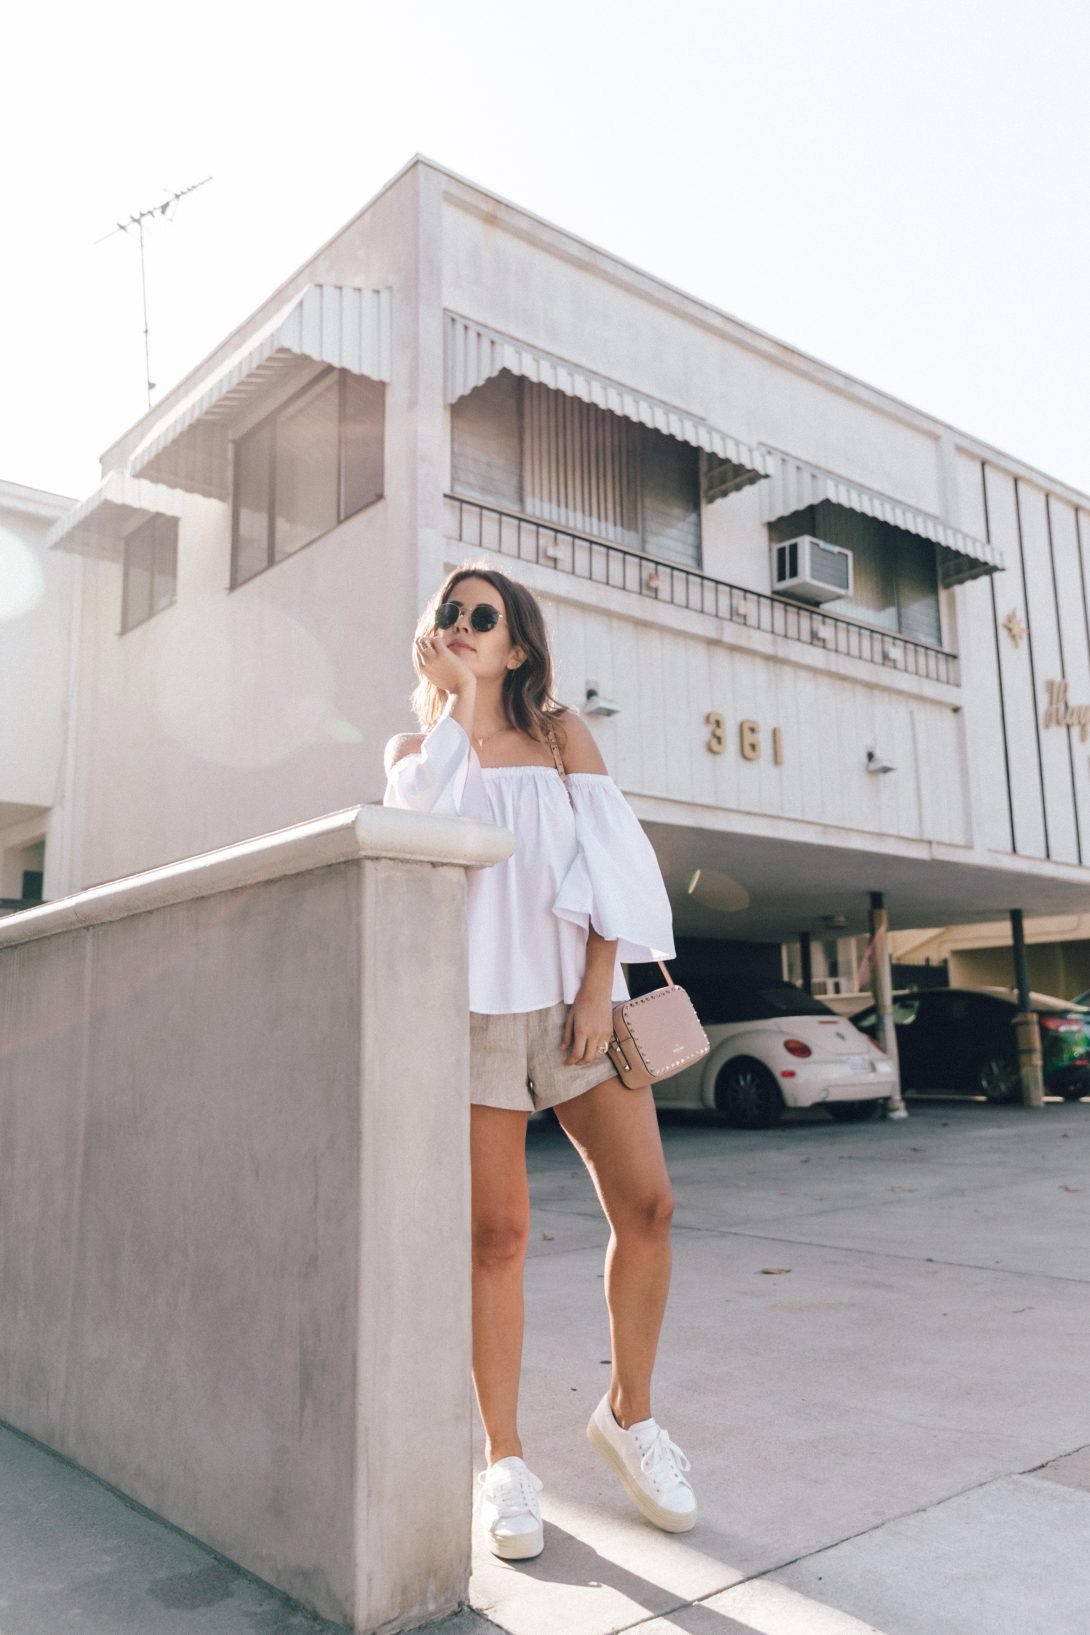 Off_The_Shoulders-Chicwish-Valentino_Bag-Monnier_Fevres-Sneakers-Saint_Laurent-Reformation_Shorts-Outfit-Los_Angeles--112